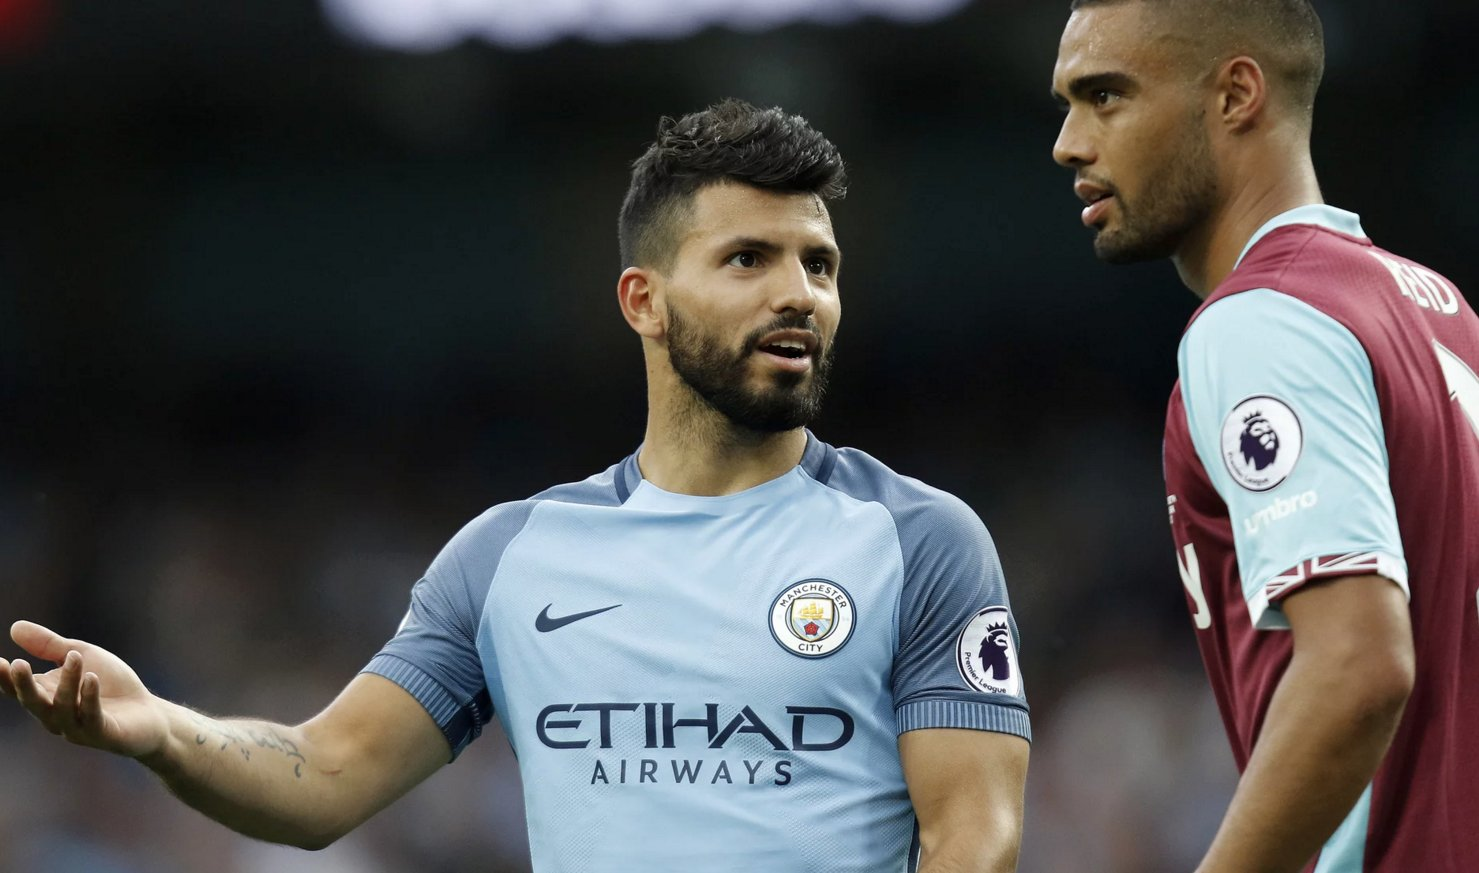 Aguero Involved In Car Crash, To Miss Chelsea Clash